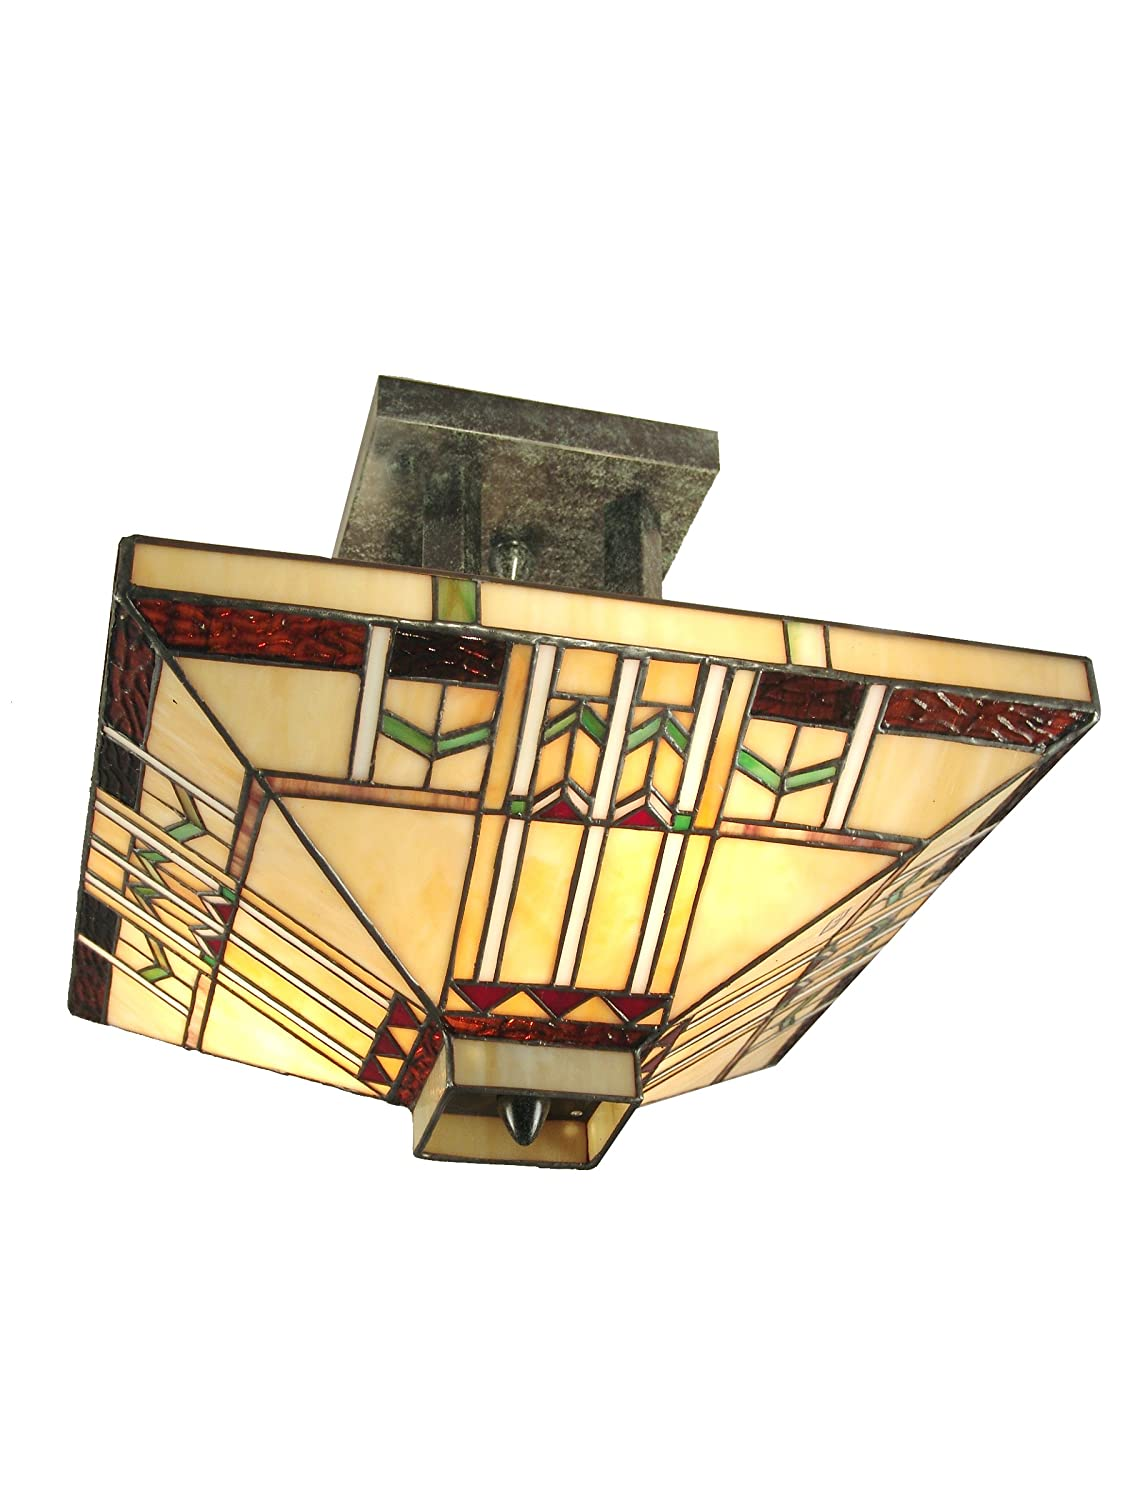 Dale tiffany th70332 san carlos flush mount light antique bronze dale tiffany th70332 san carlos flush mount light antique bronze and art glass shade close to ceiling light fixtures amazon aloadofball Image collections